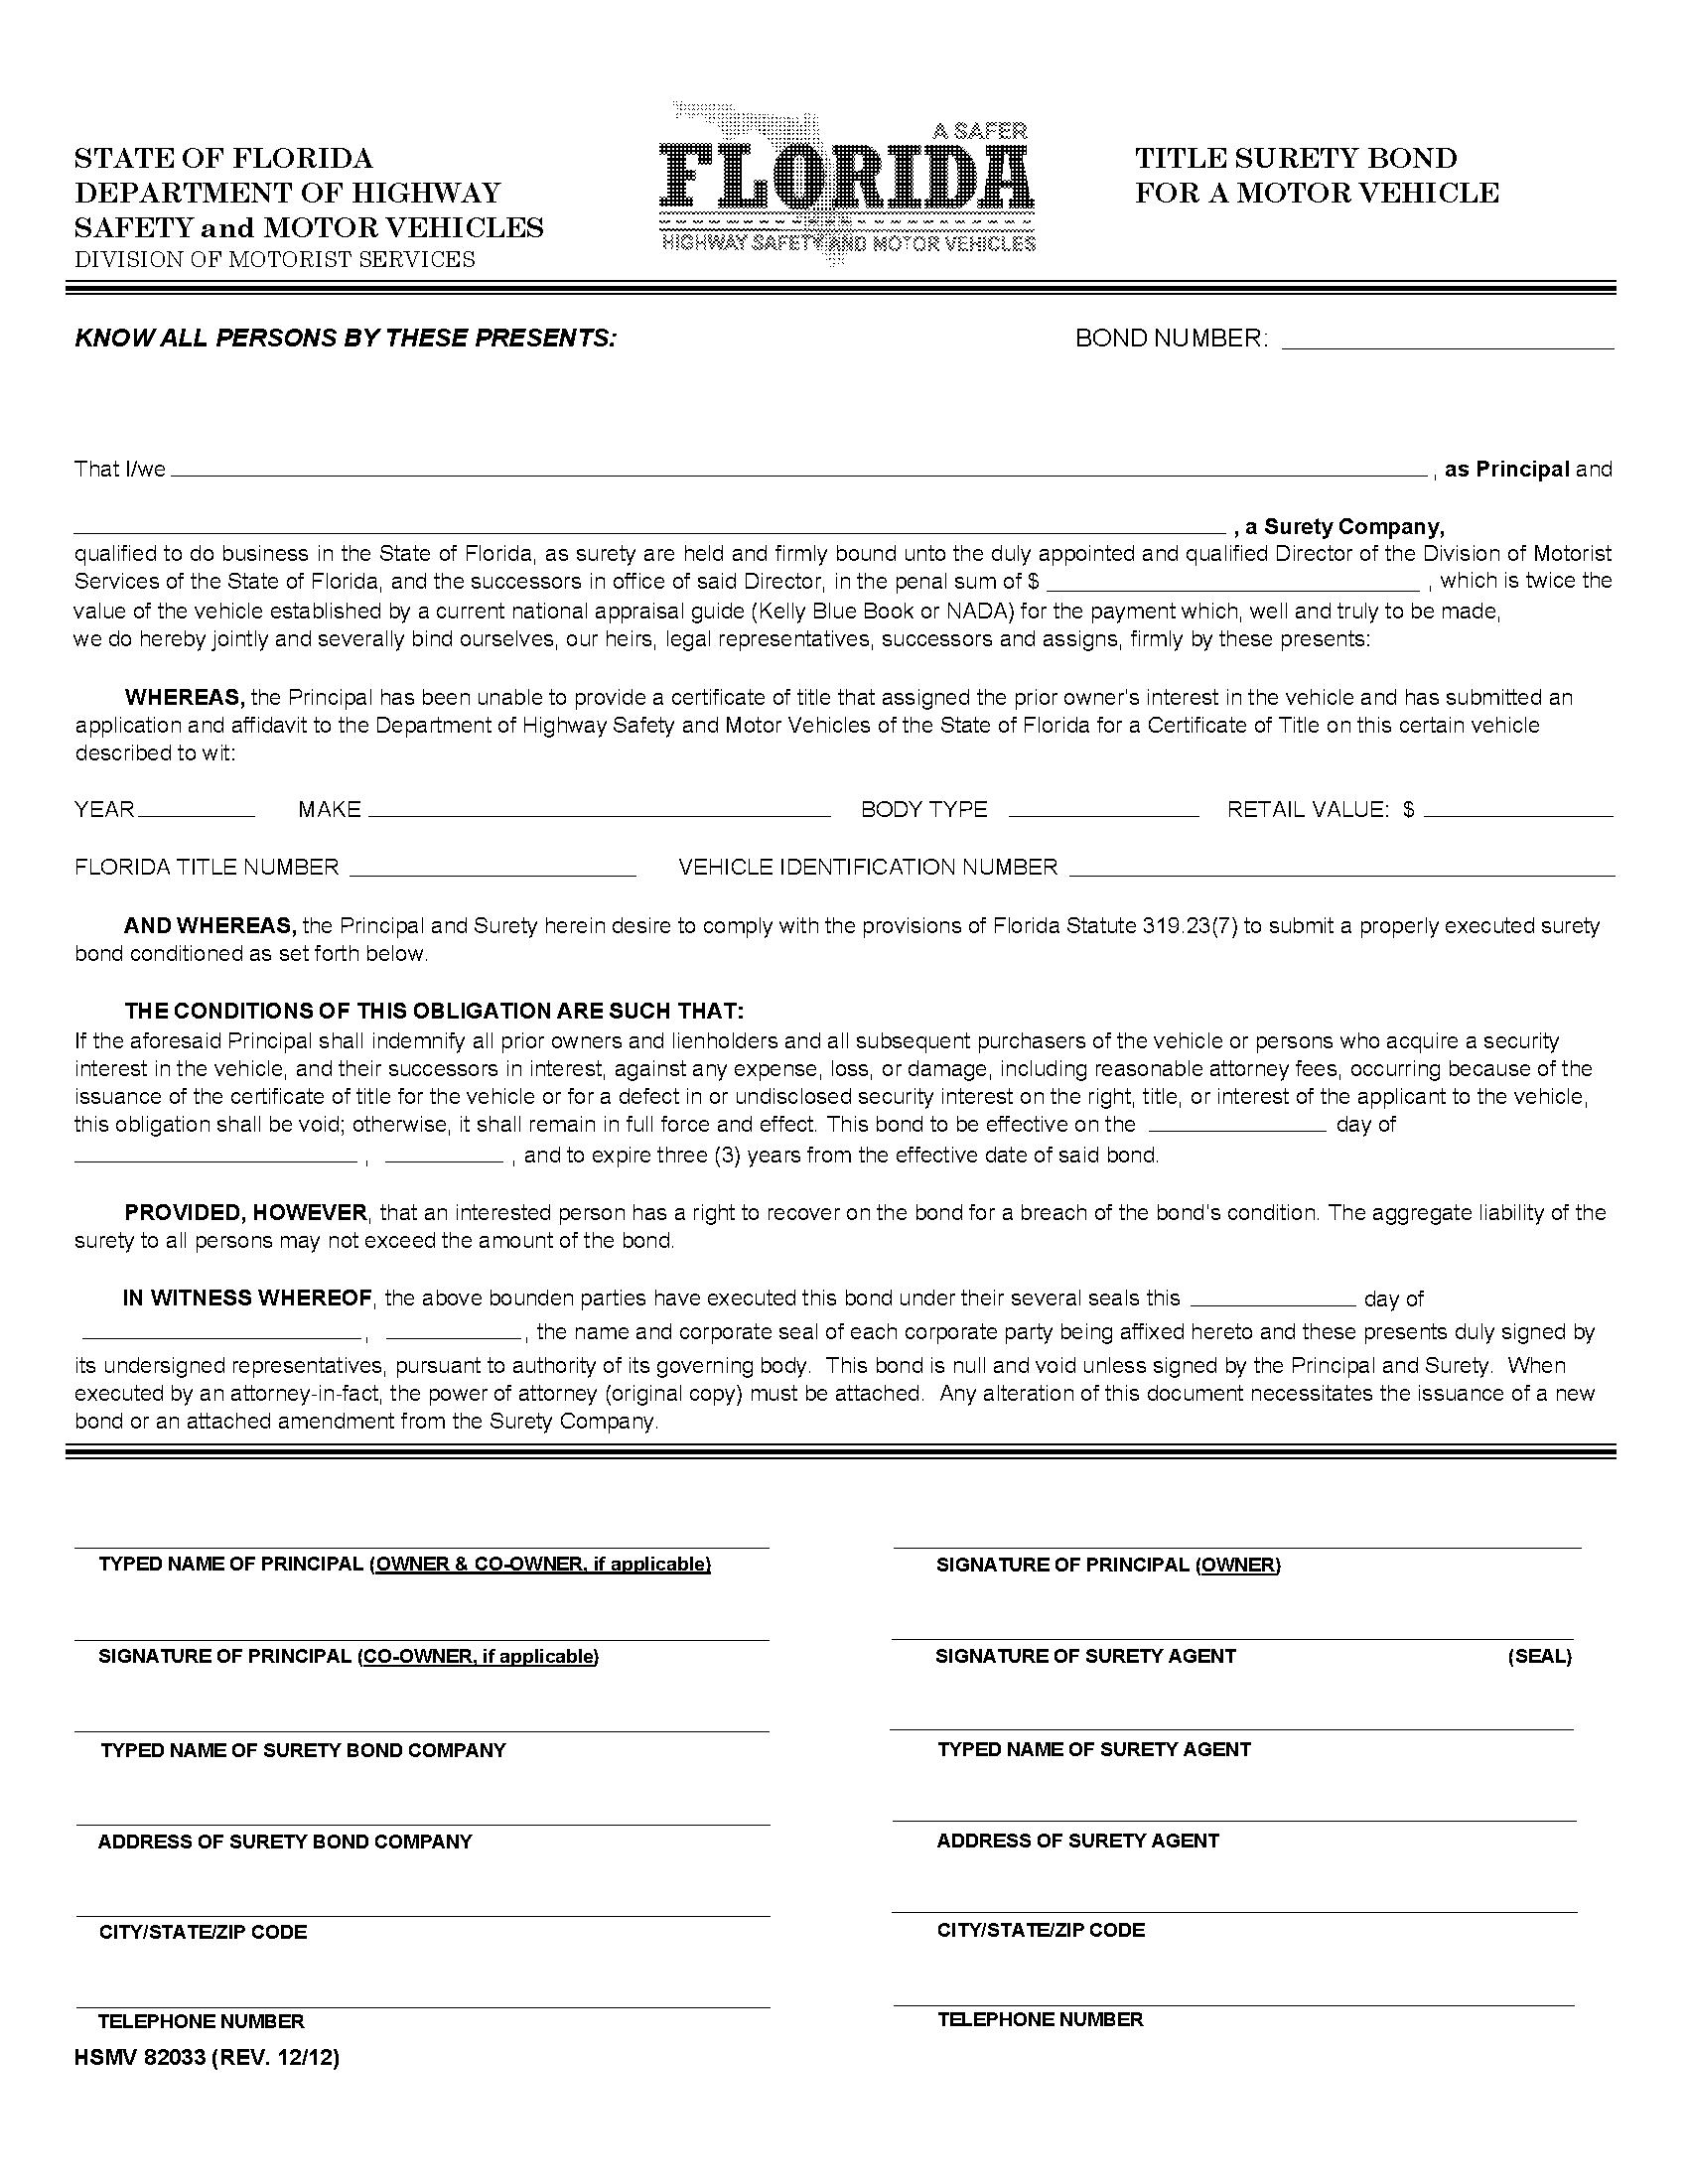 State of Florida Motor Vehicle Certificate of Title sample image